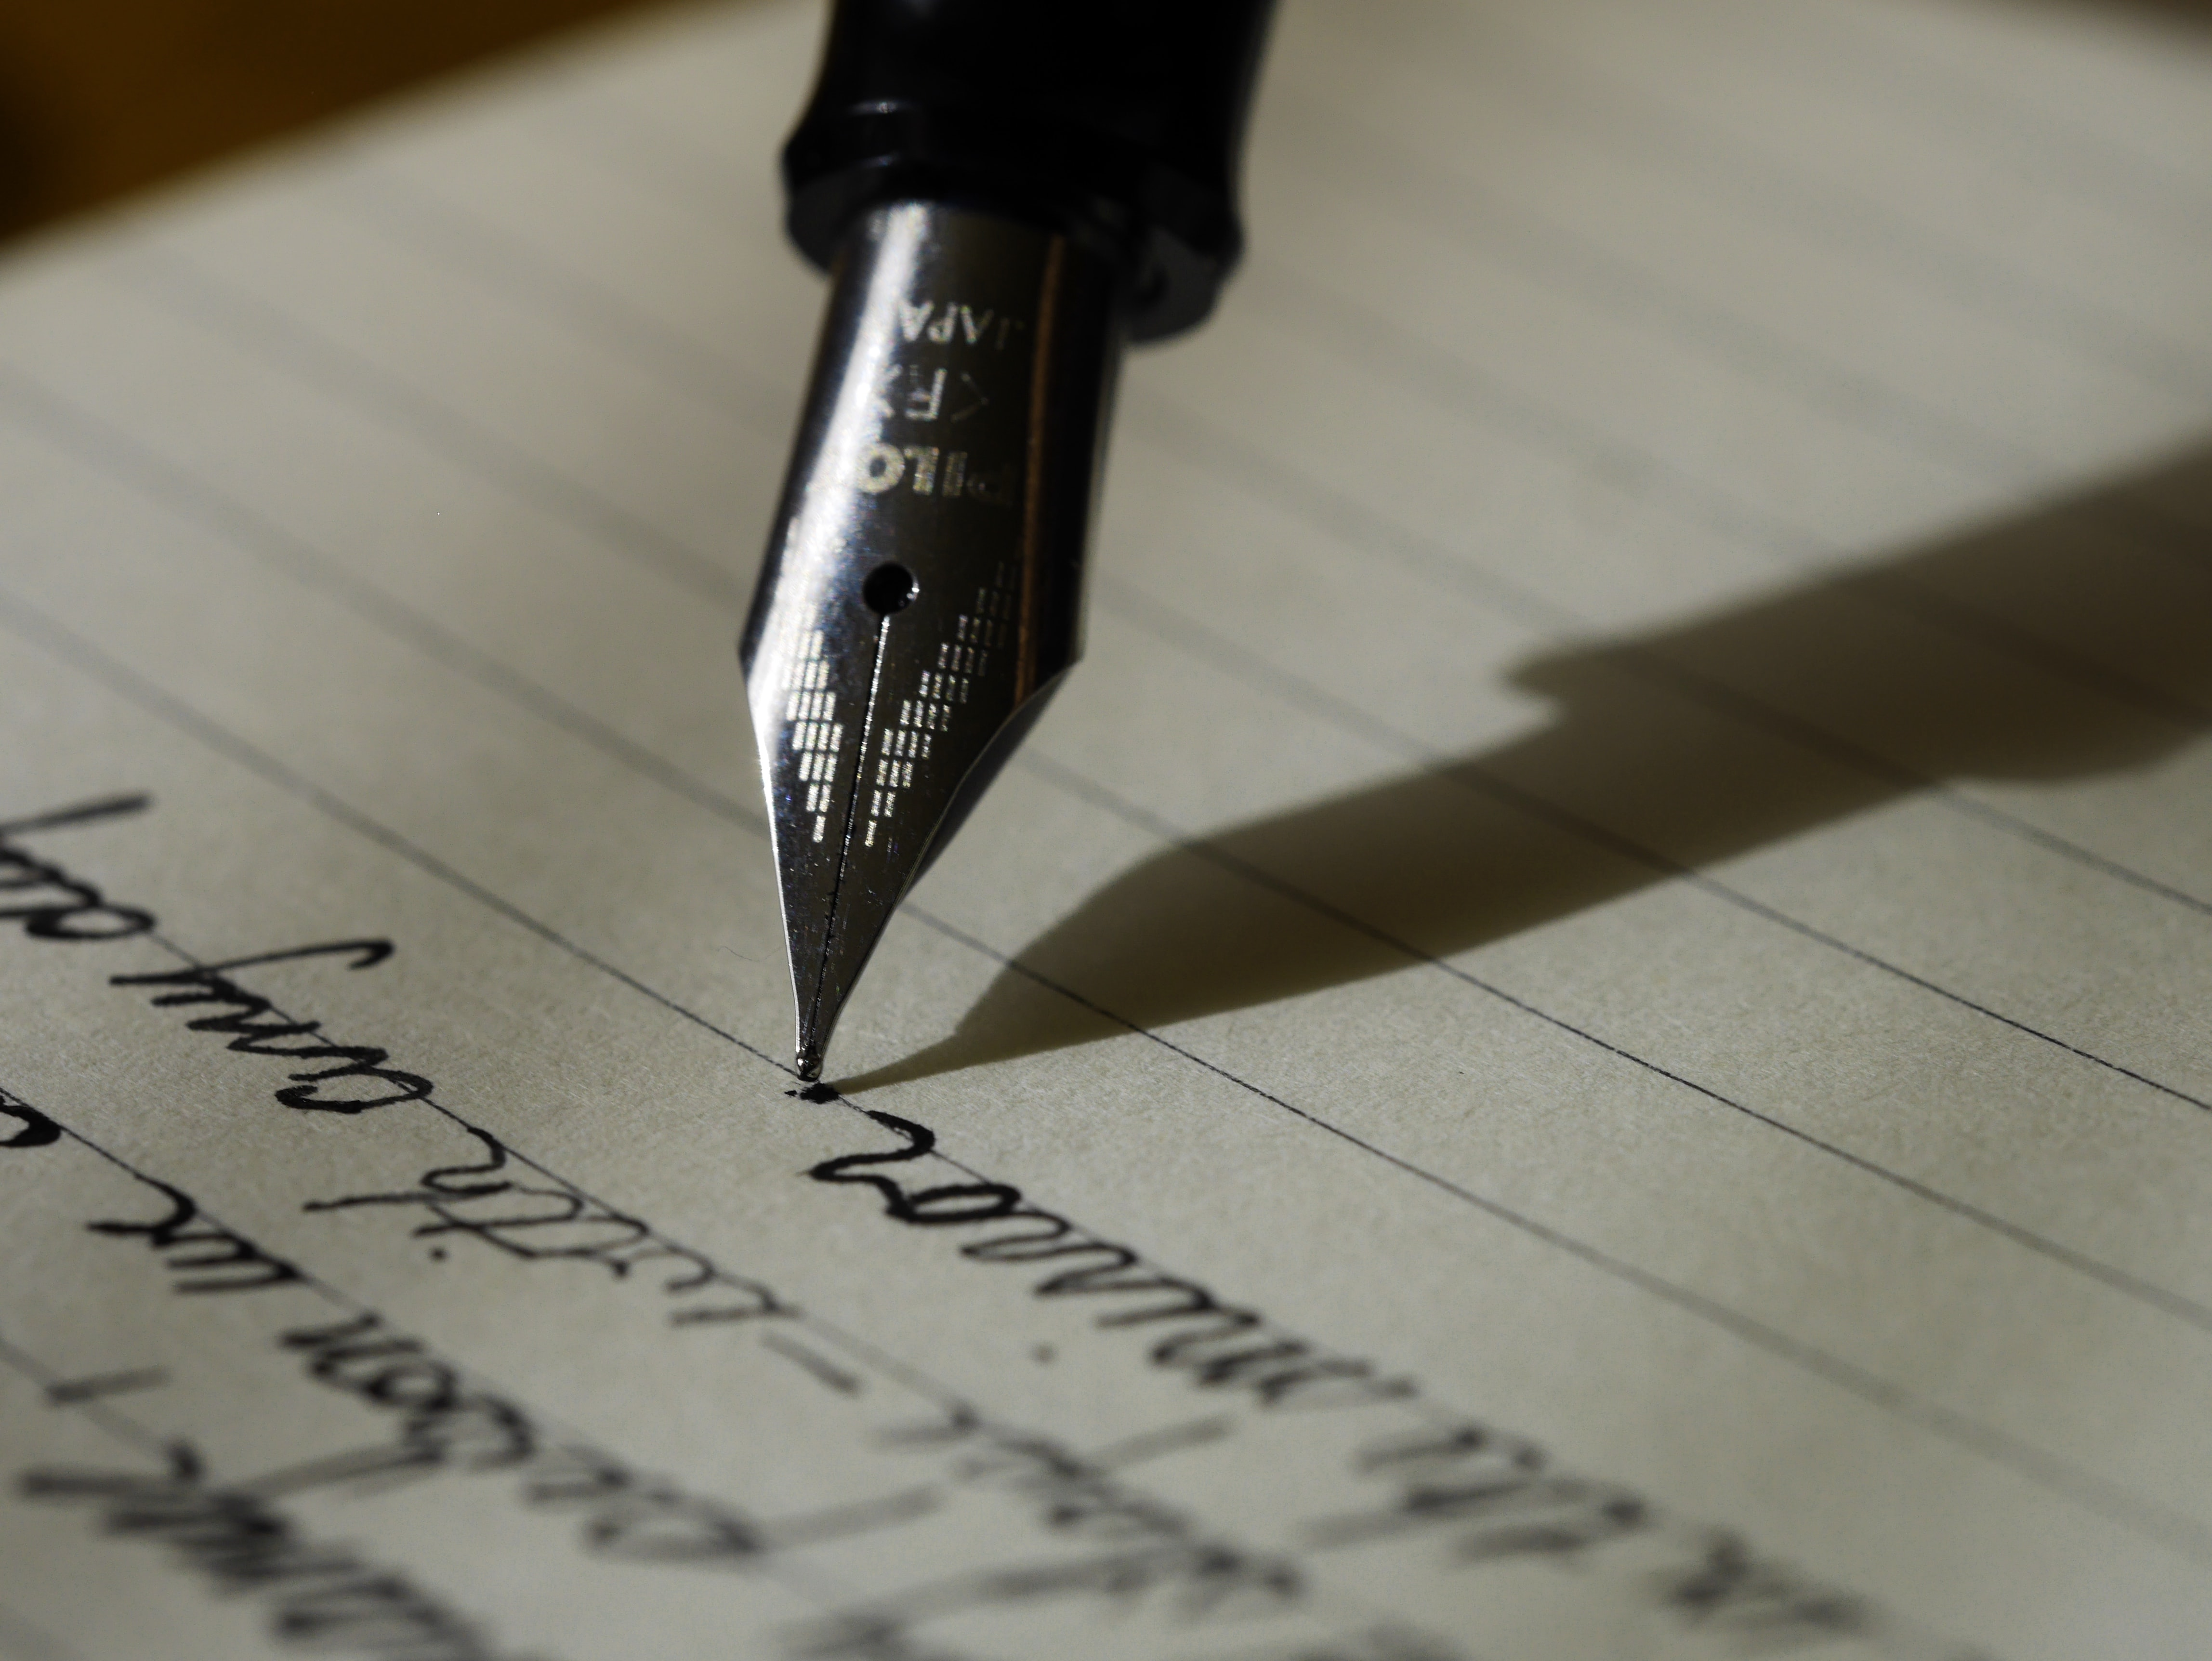 I will write high quality Web content of 1,000-word articles